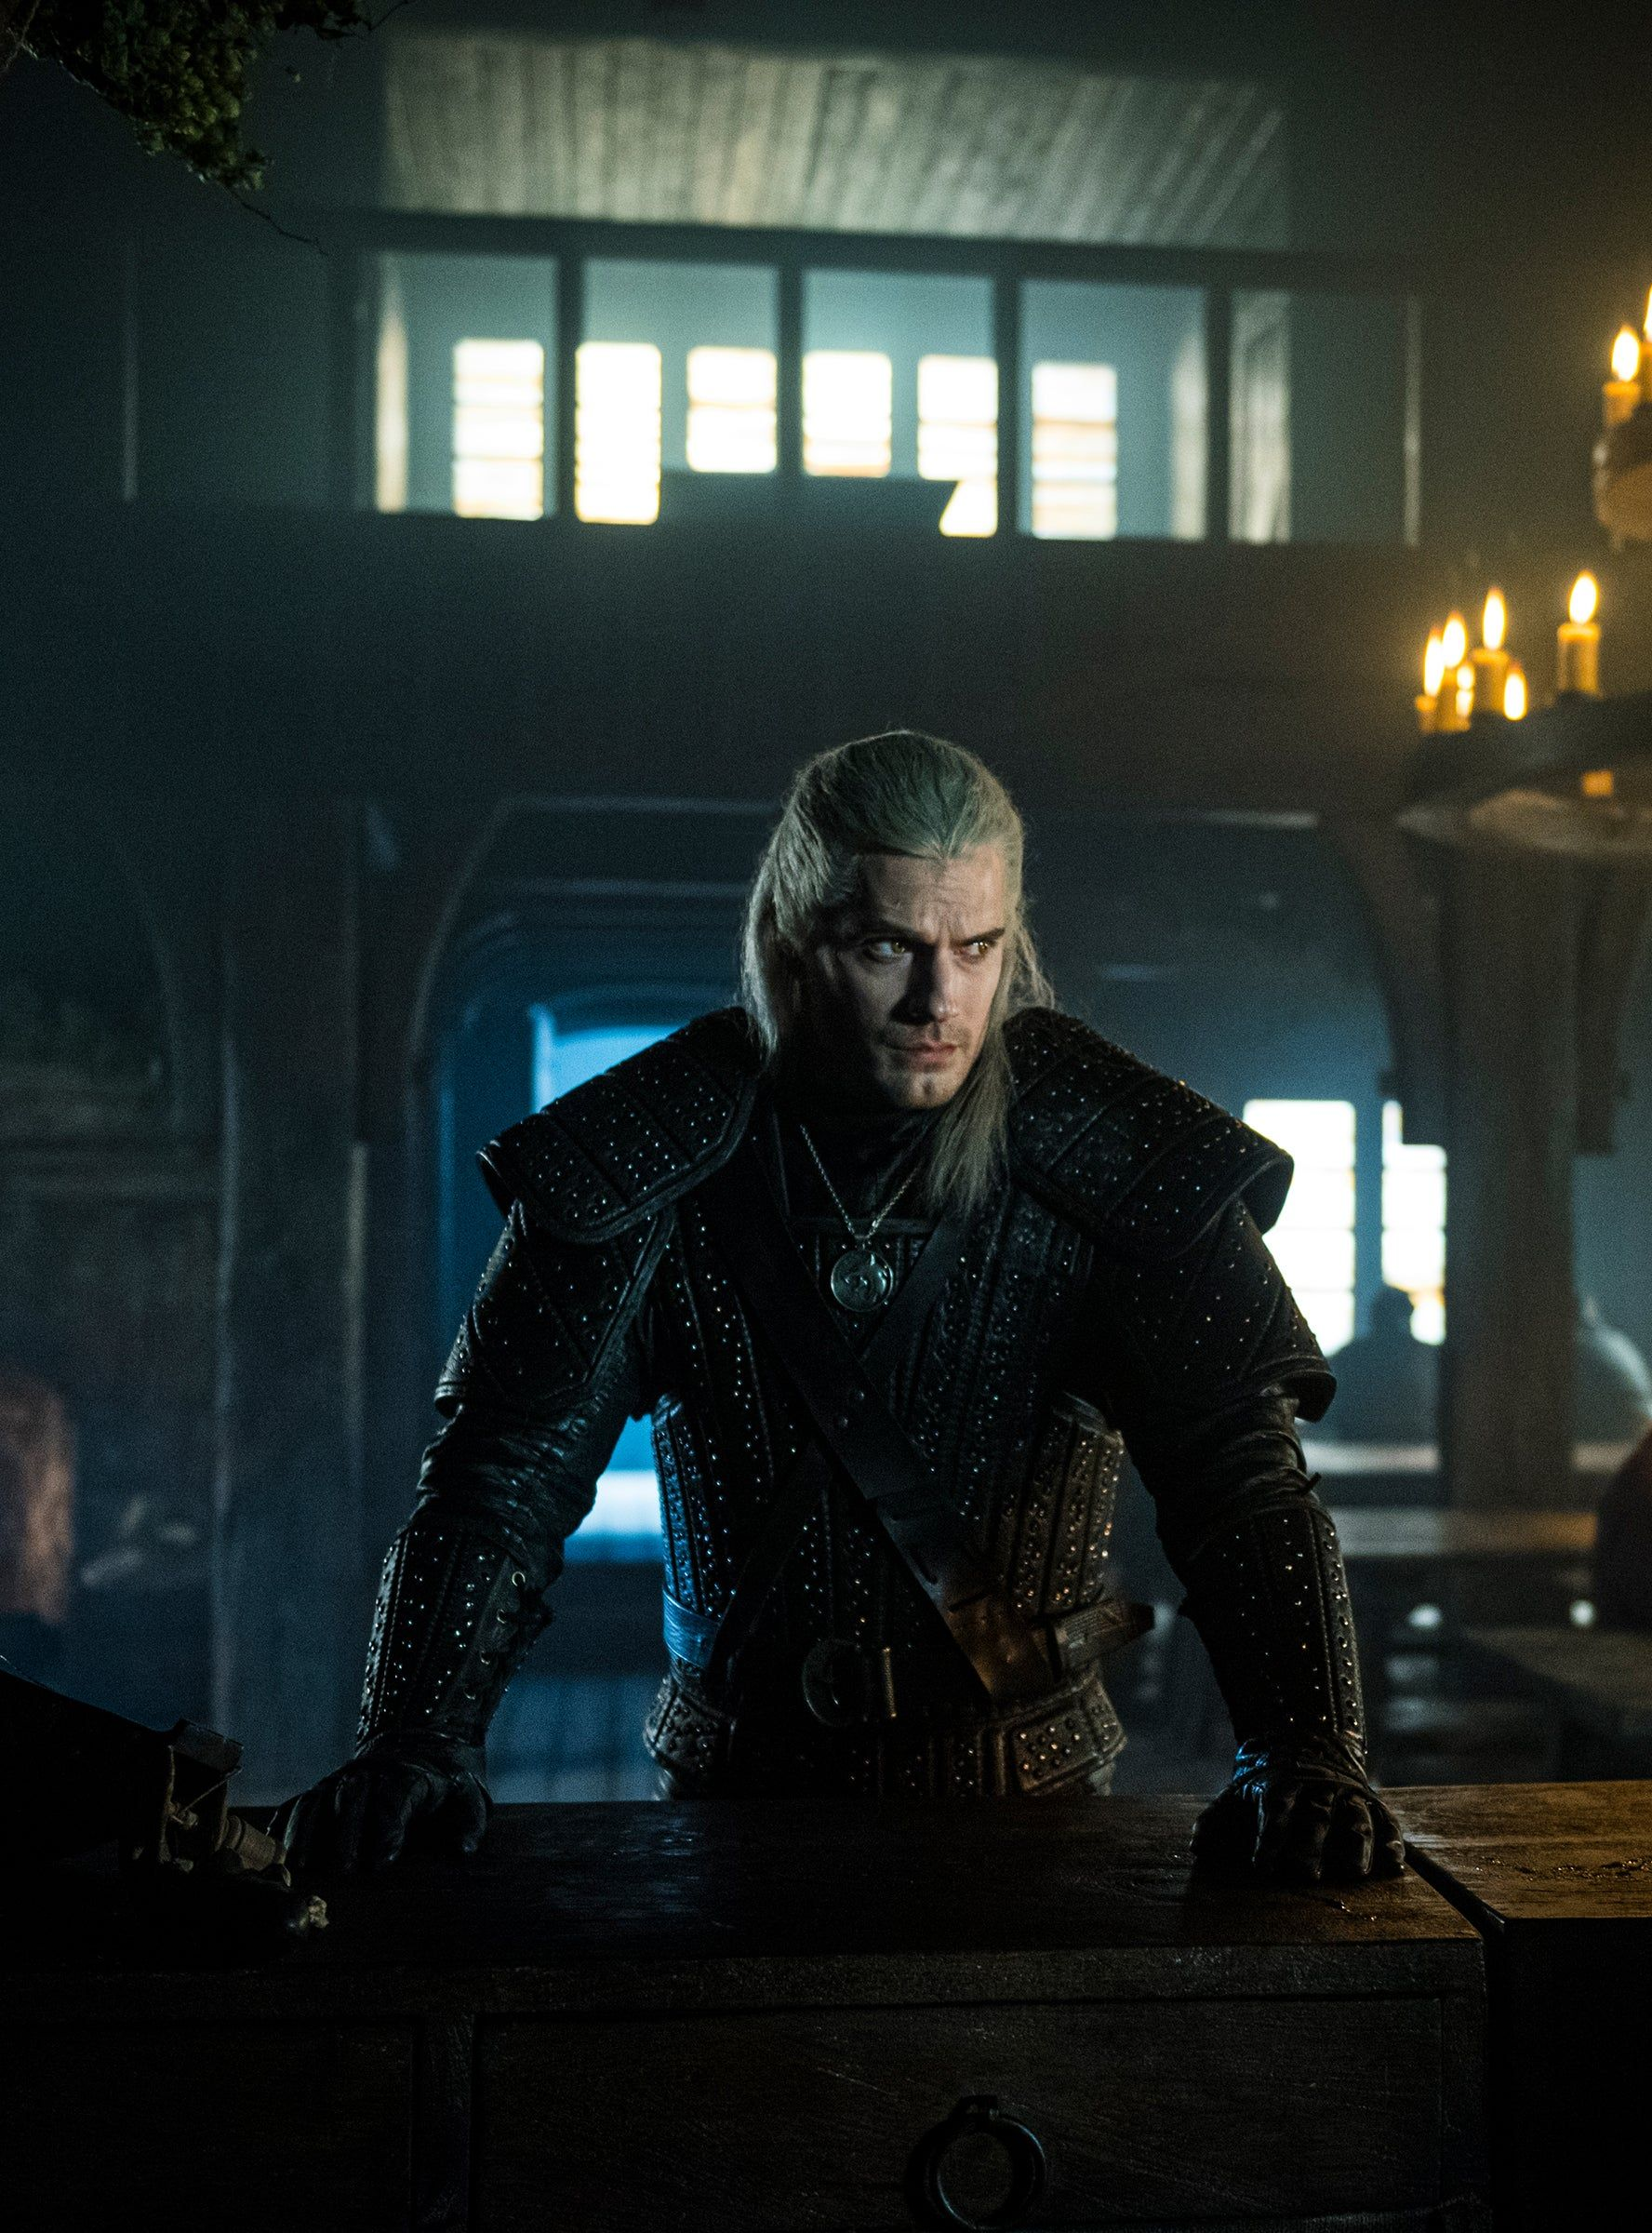 Is That Beloved Character Dead After The Witcher Finale in 2020 1776x2400